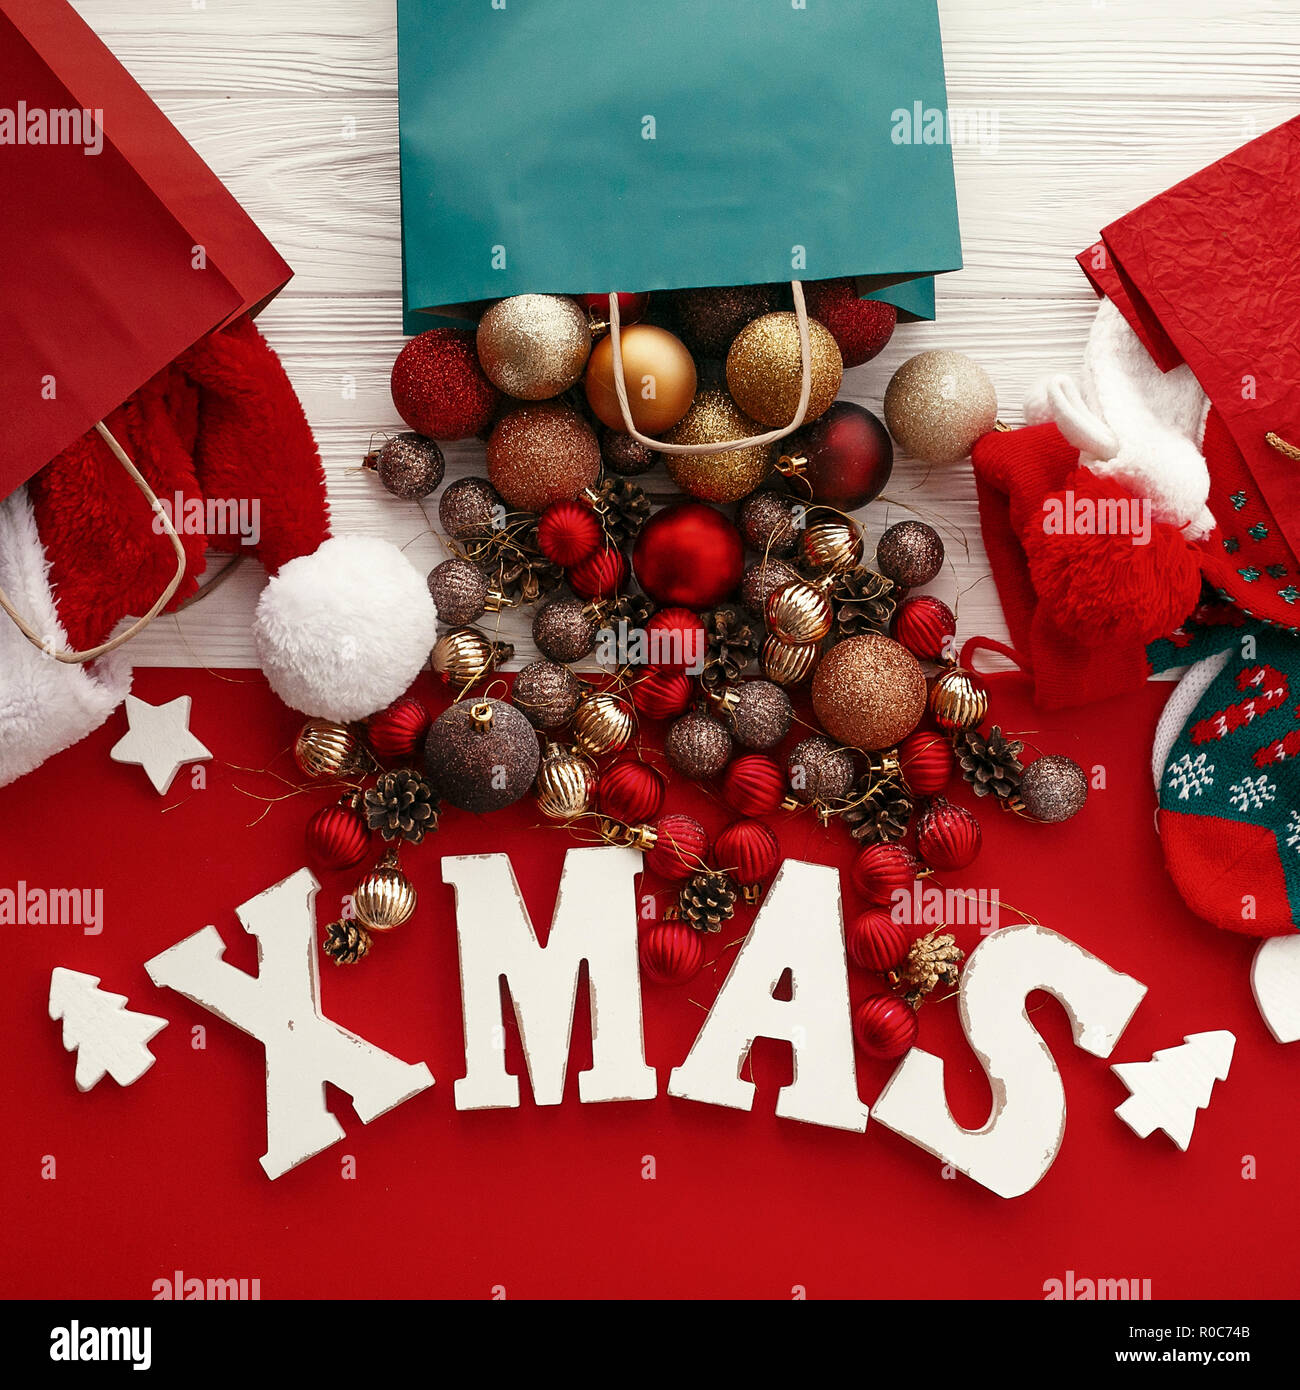 Card Red Letters Merry Christmas Stockfotos & Card Red Letters Merry ...